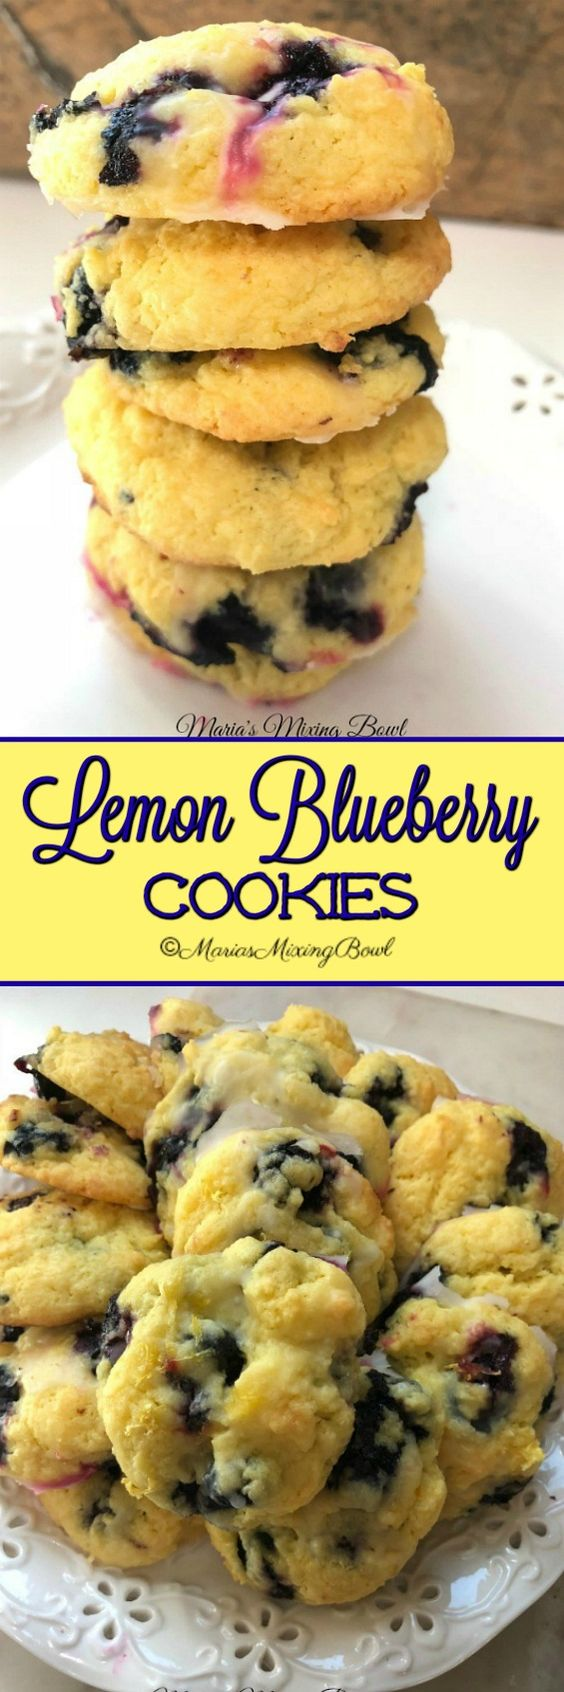 Lemon Blueberry Cookies are AMAZING! Seriously they came out of the oven and we could hardly keep our hands off of them.